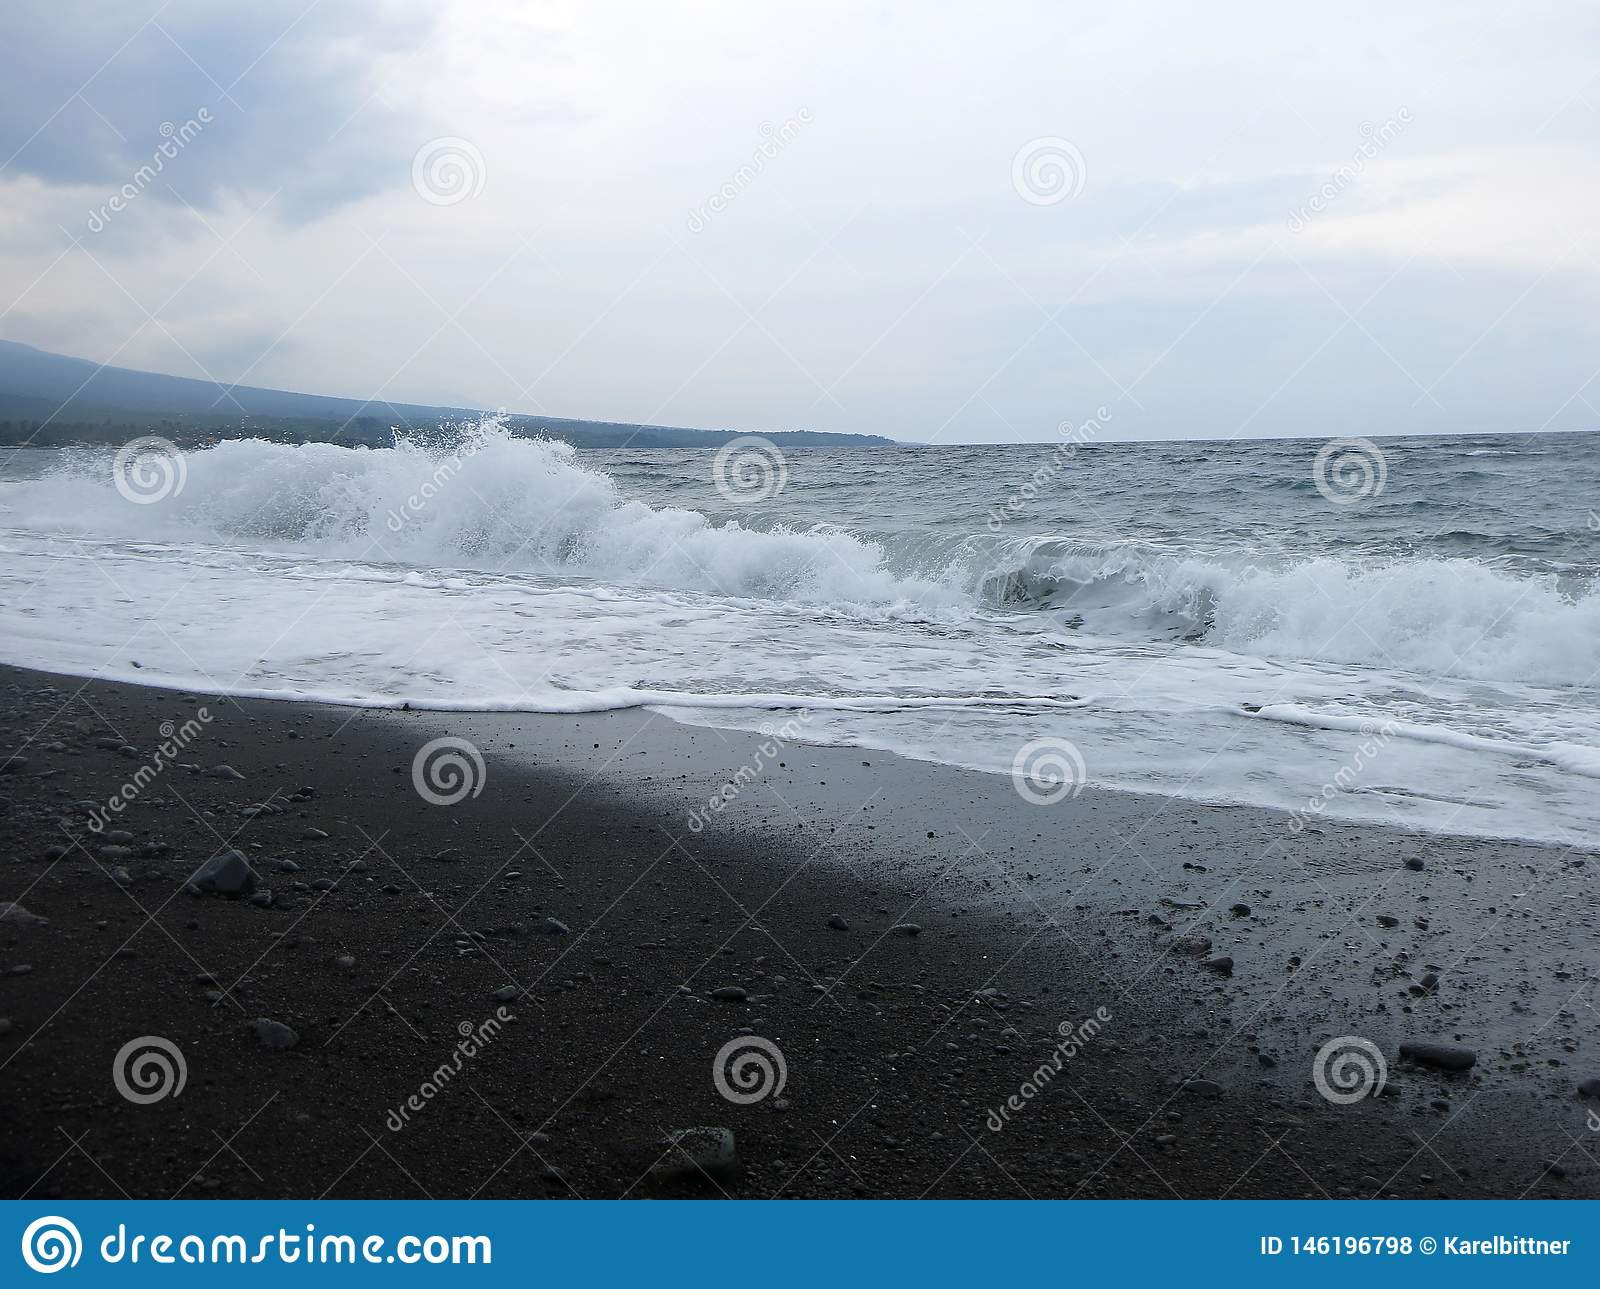 Waves, surf and sea foam hitting the sandy black volcanic sand beach of Bali. In Amed, the sea is quiet, but the waves around the